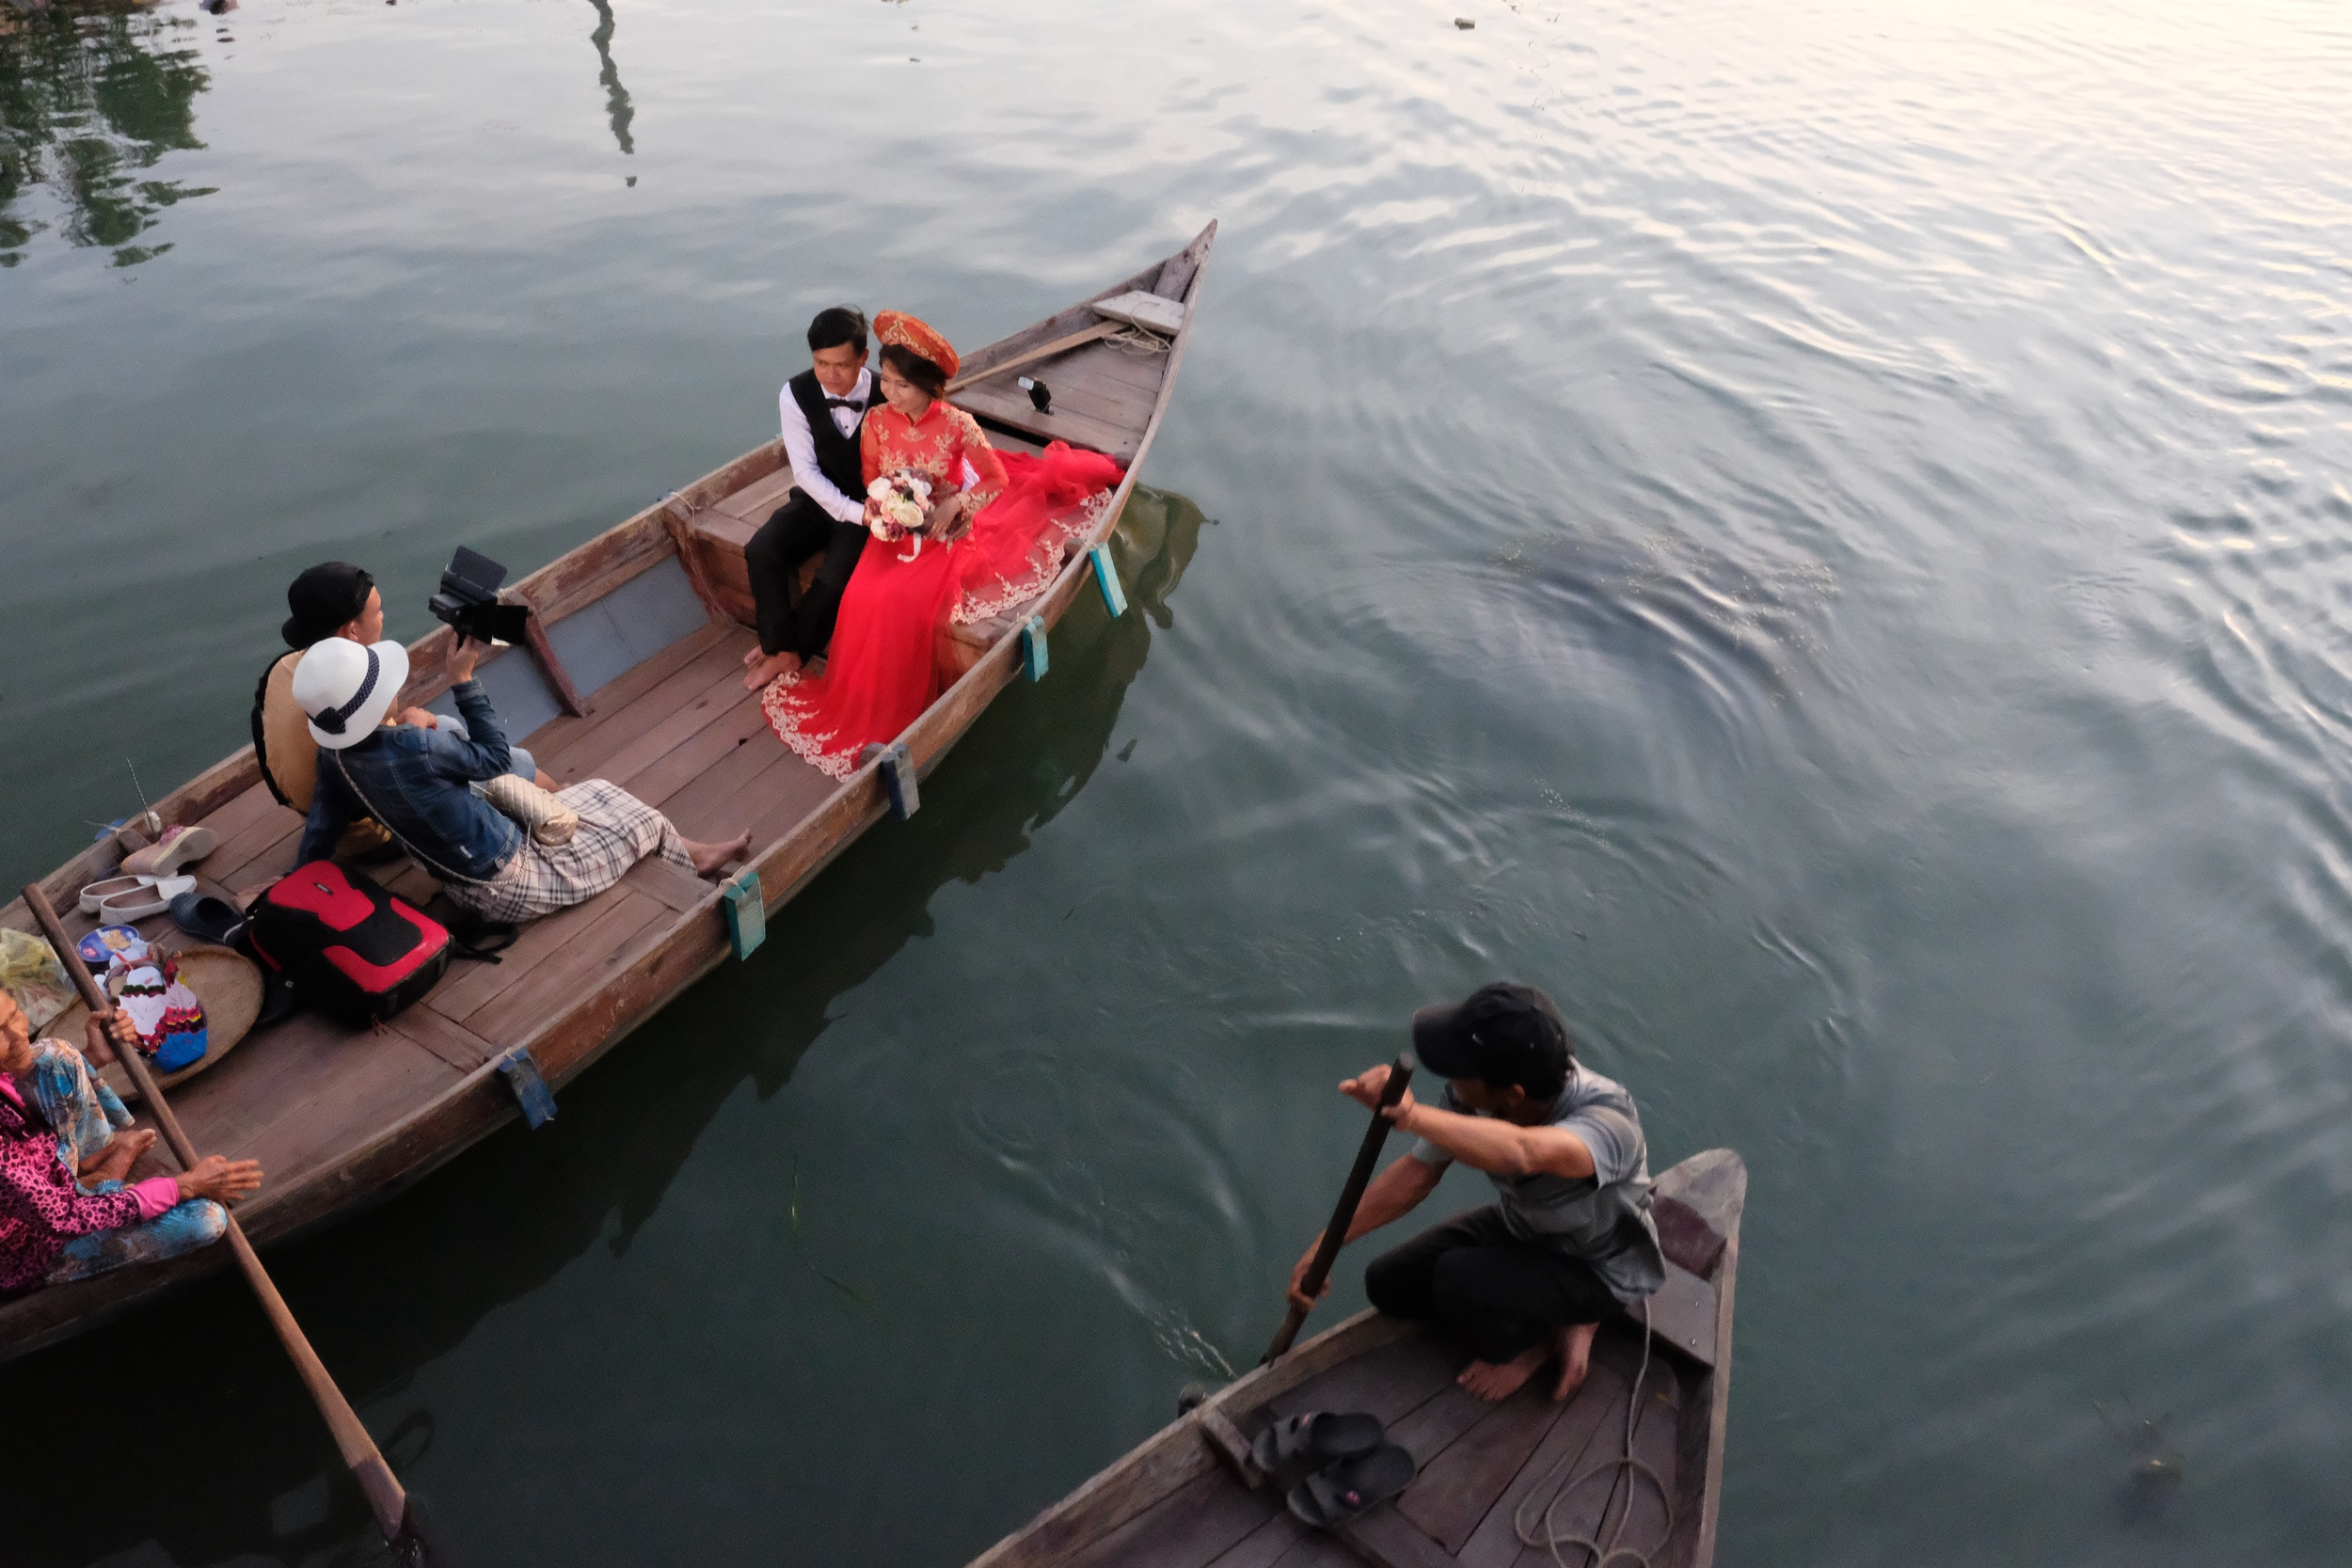 Hoi An, newlyweds on the river.